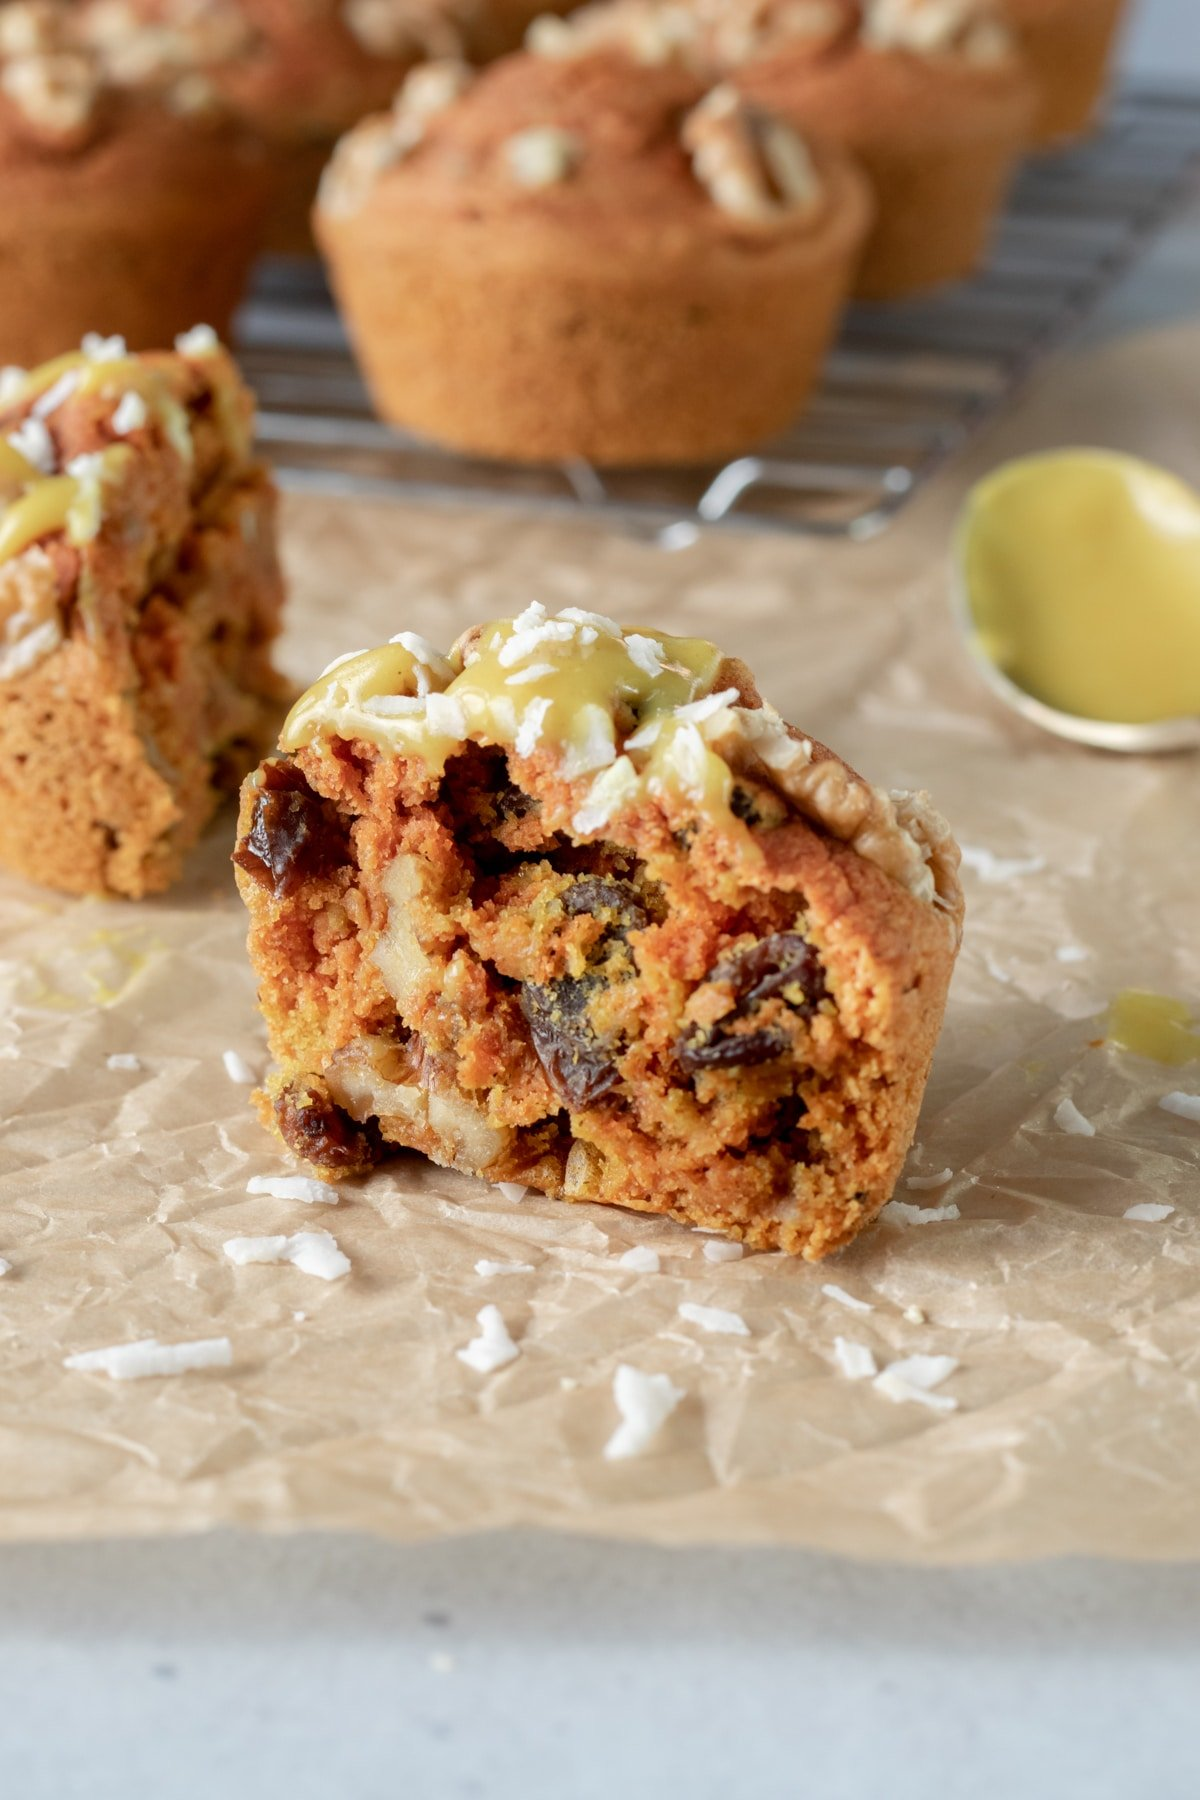 view of the inside of a muffin, with raisins and walnuts